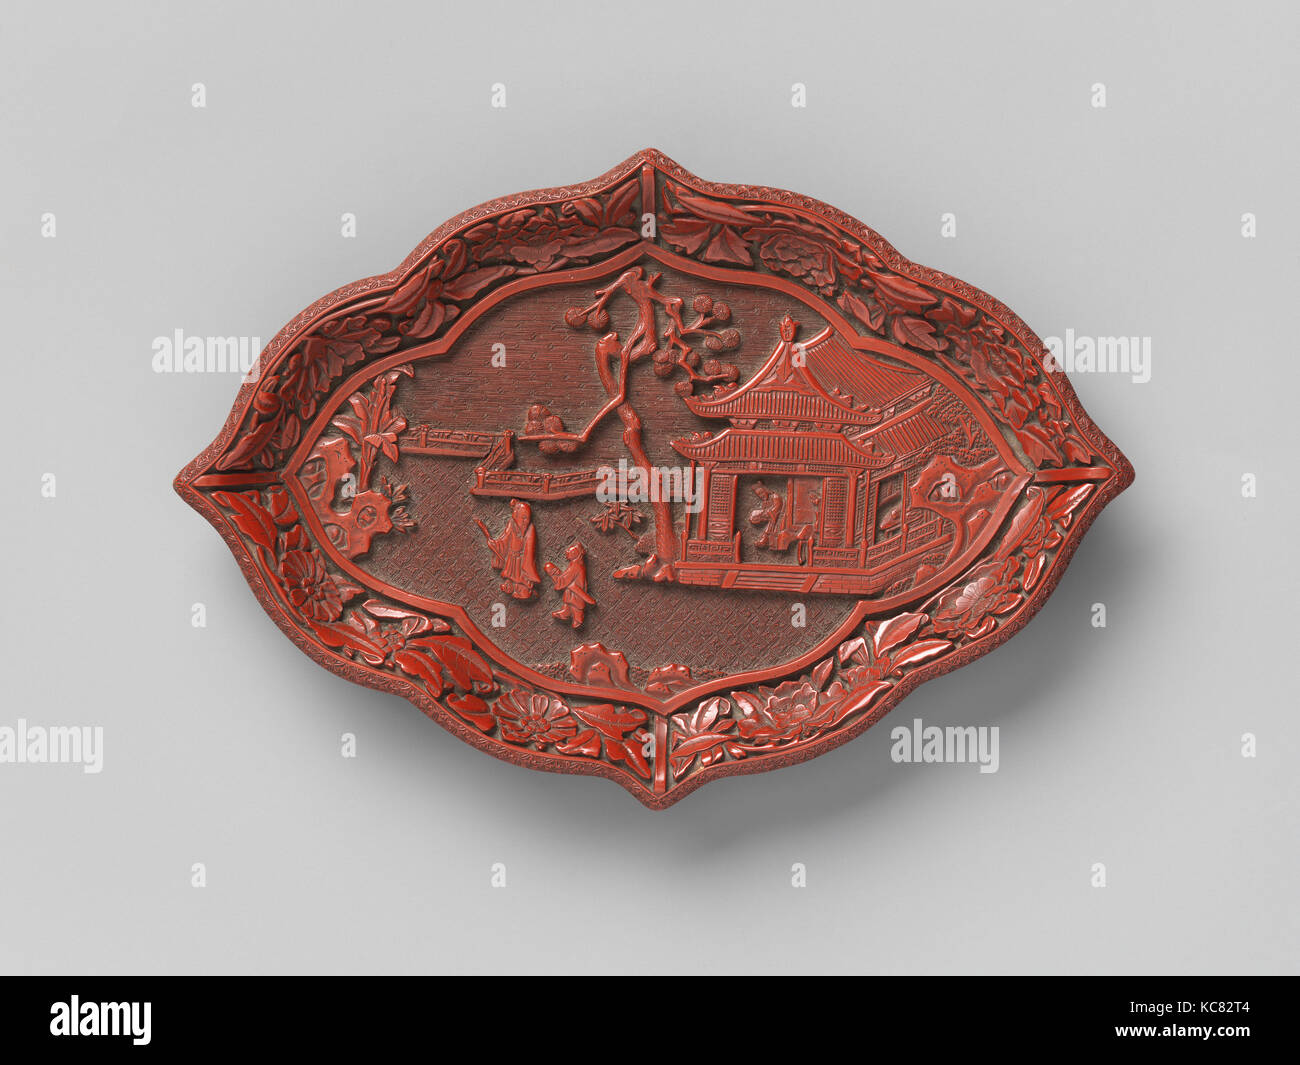 元 剔紅高仕圖菱形漆盤, Lozenge-shaped dish with garden scene, 14th century - Stock Image